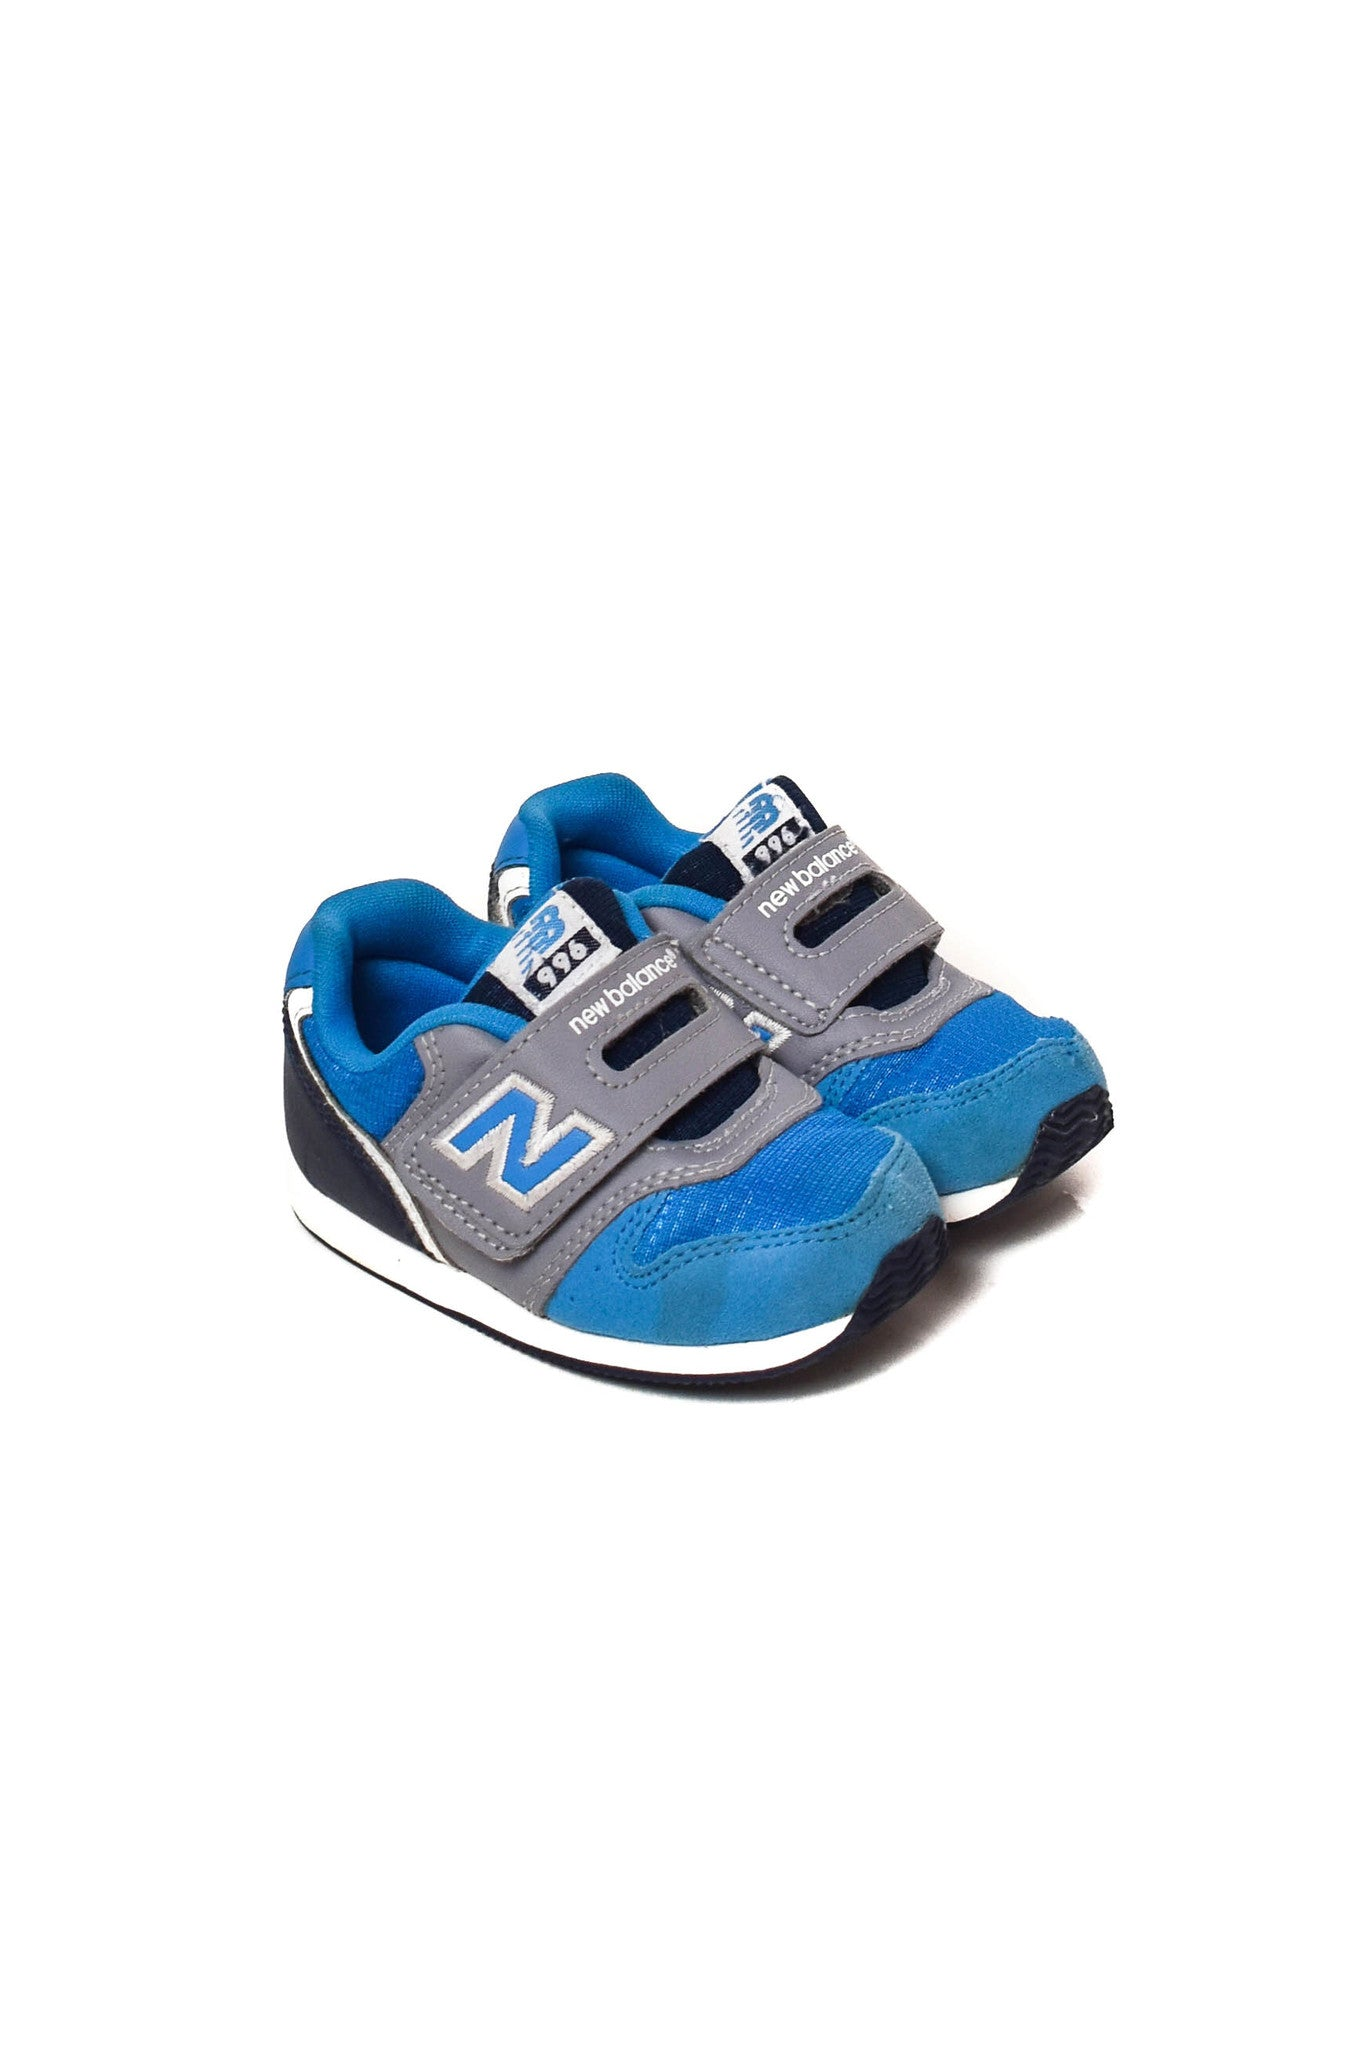 10003488 New Balance Baby~Shoes 18-24M (US 7) at Retykle